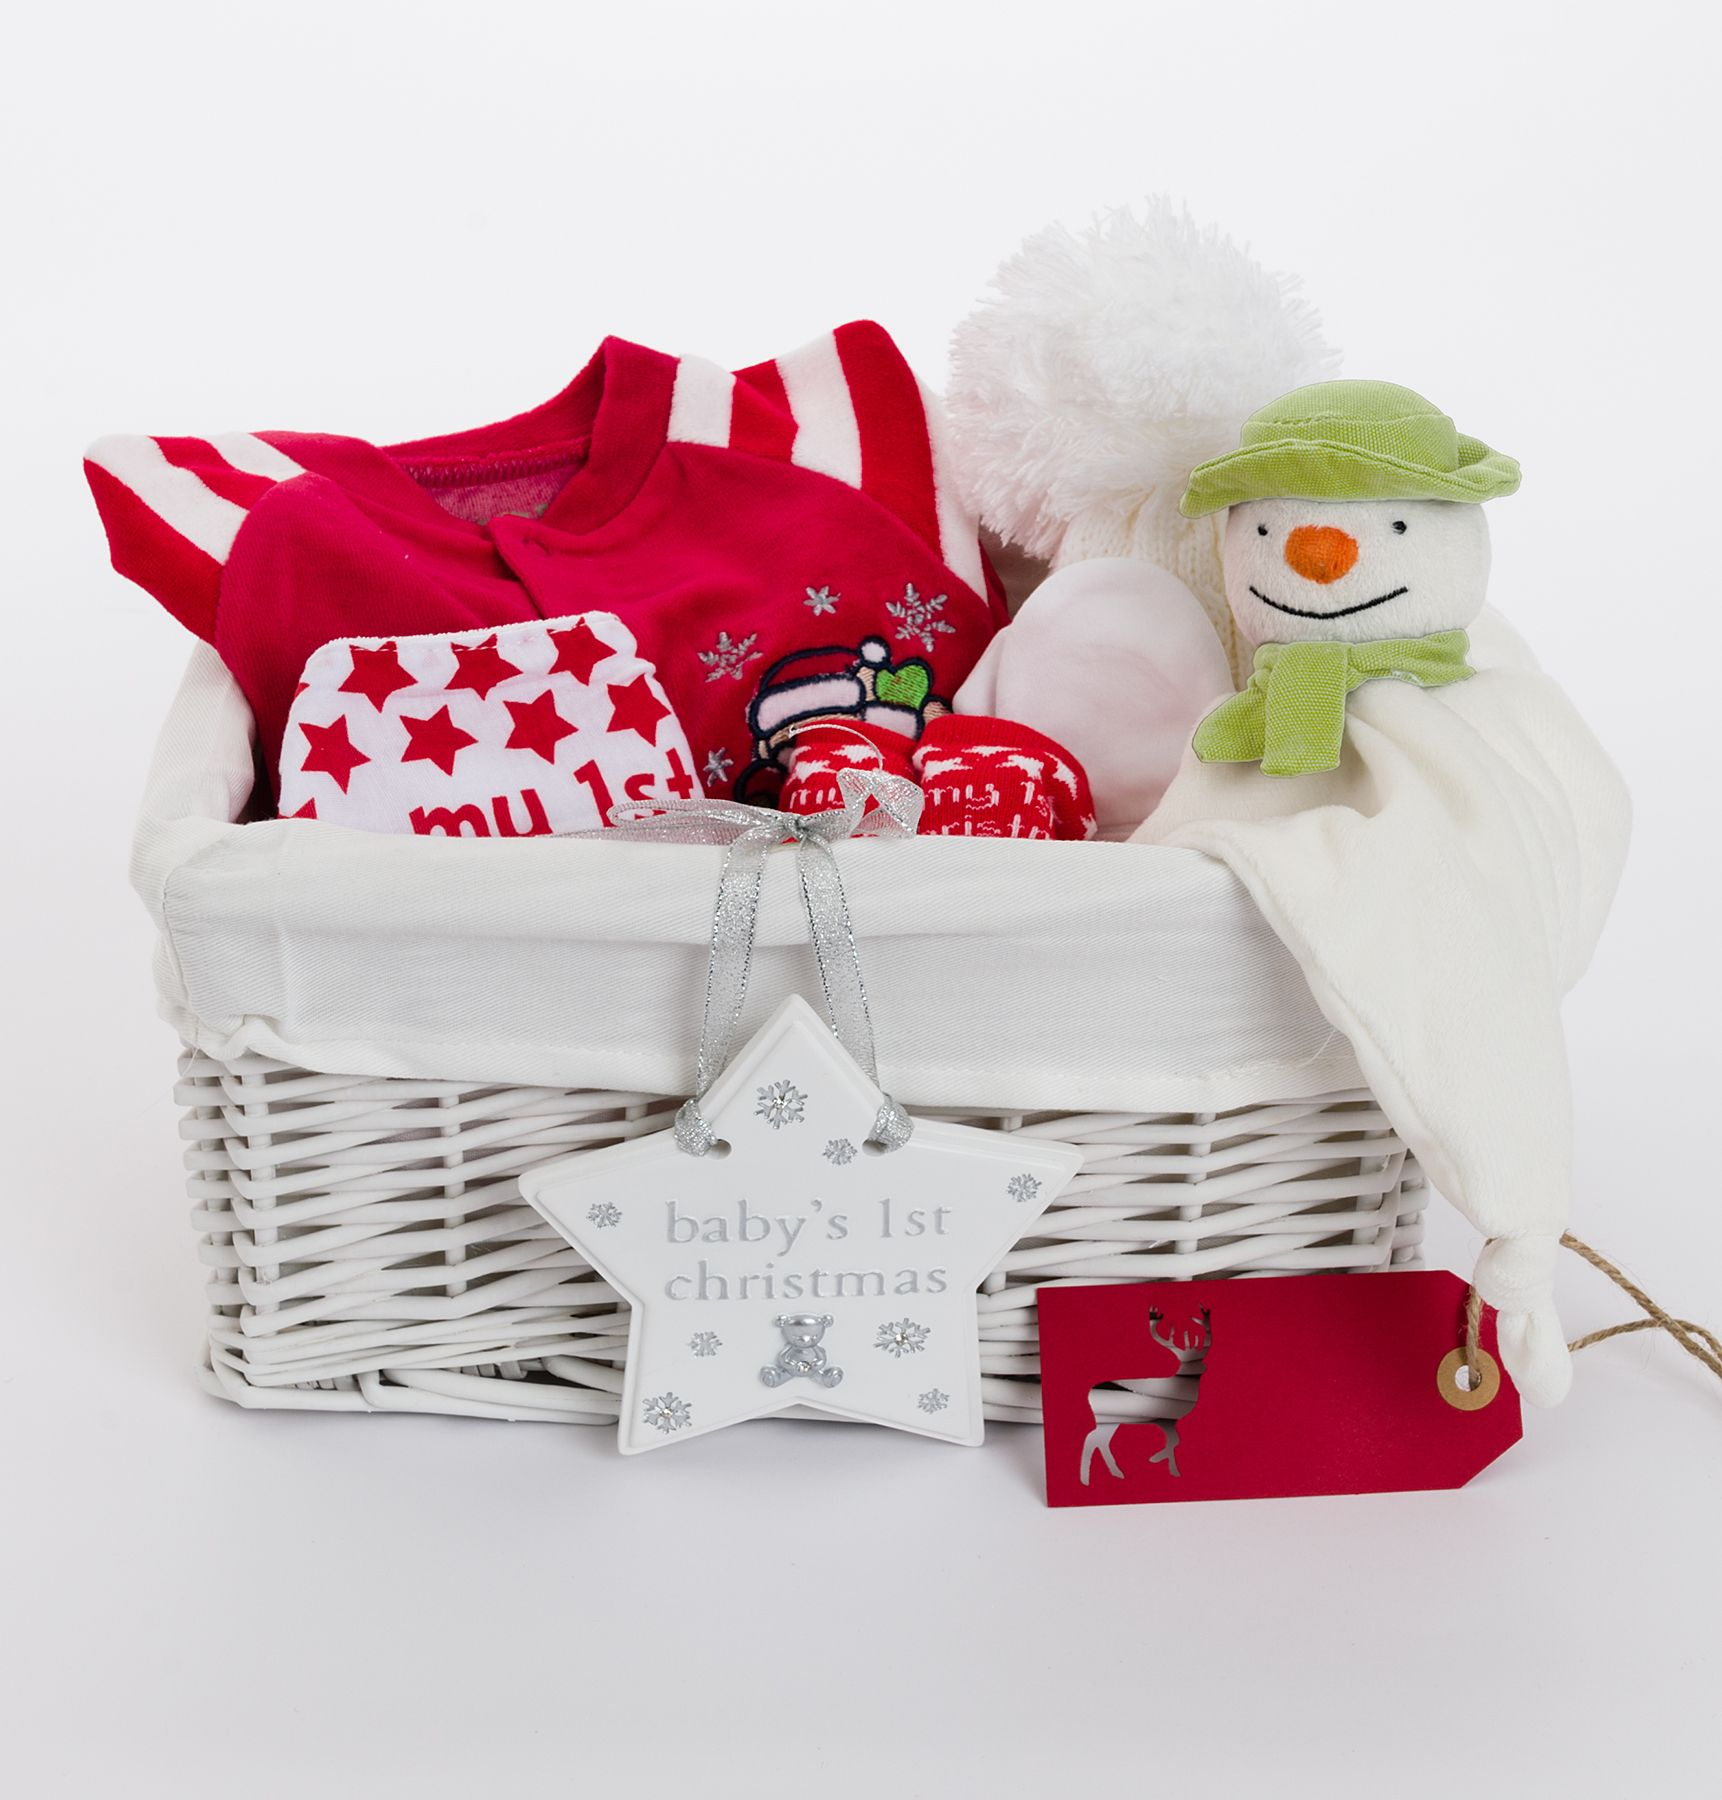 The Snowman Baby Hamper - Neutral | Gifts for others | Pinterest ...